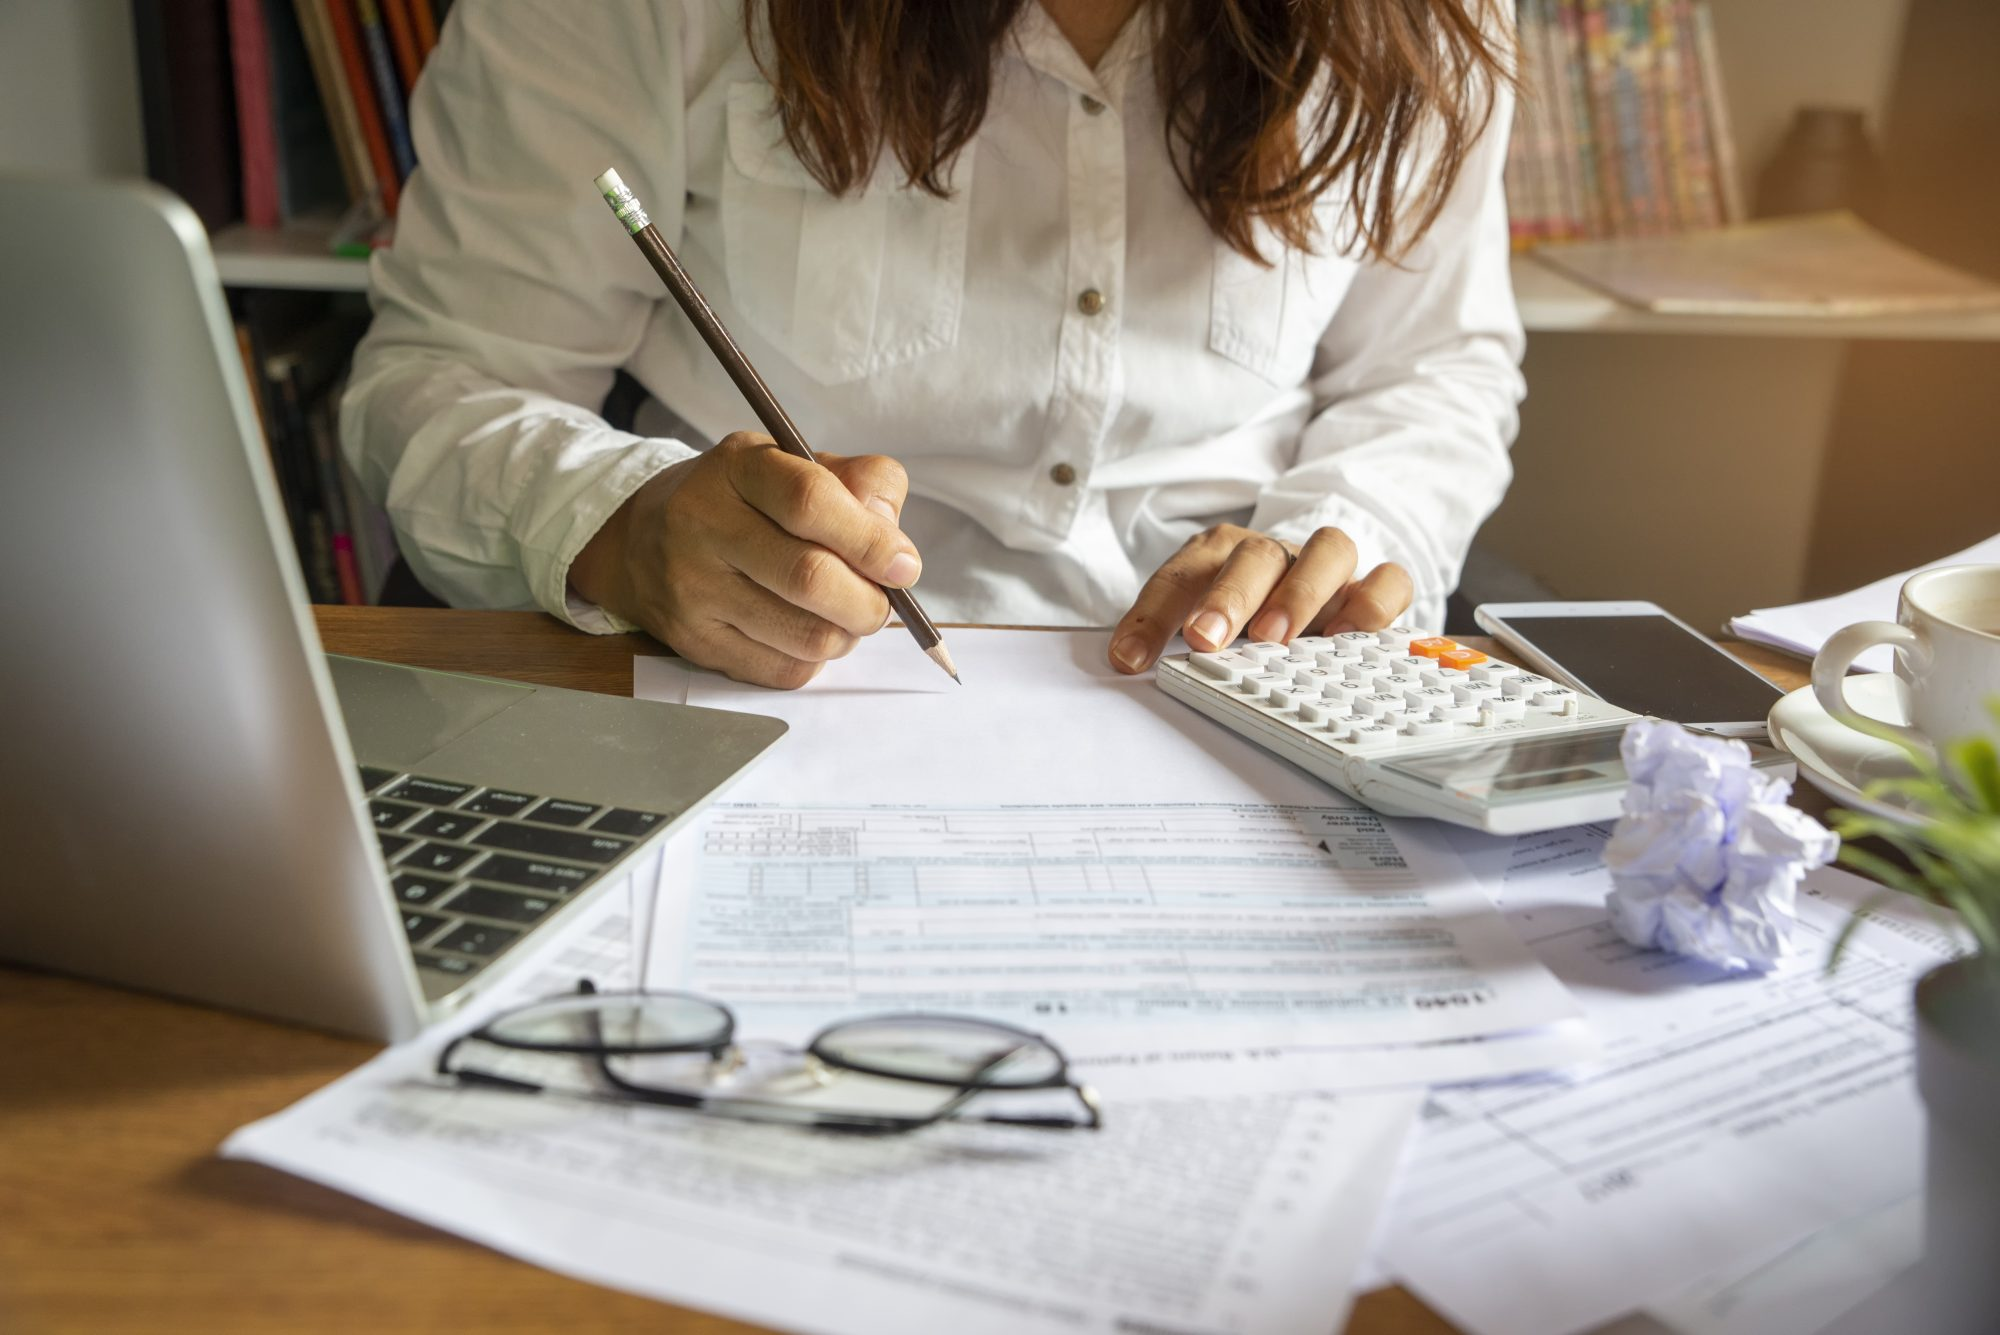 filling out tax from on desk